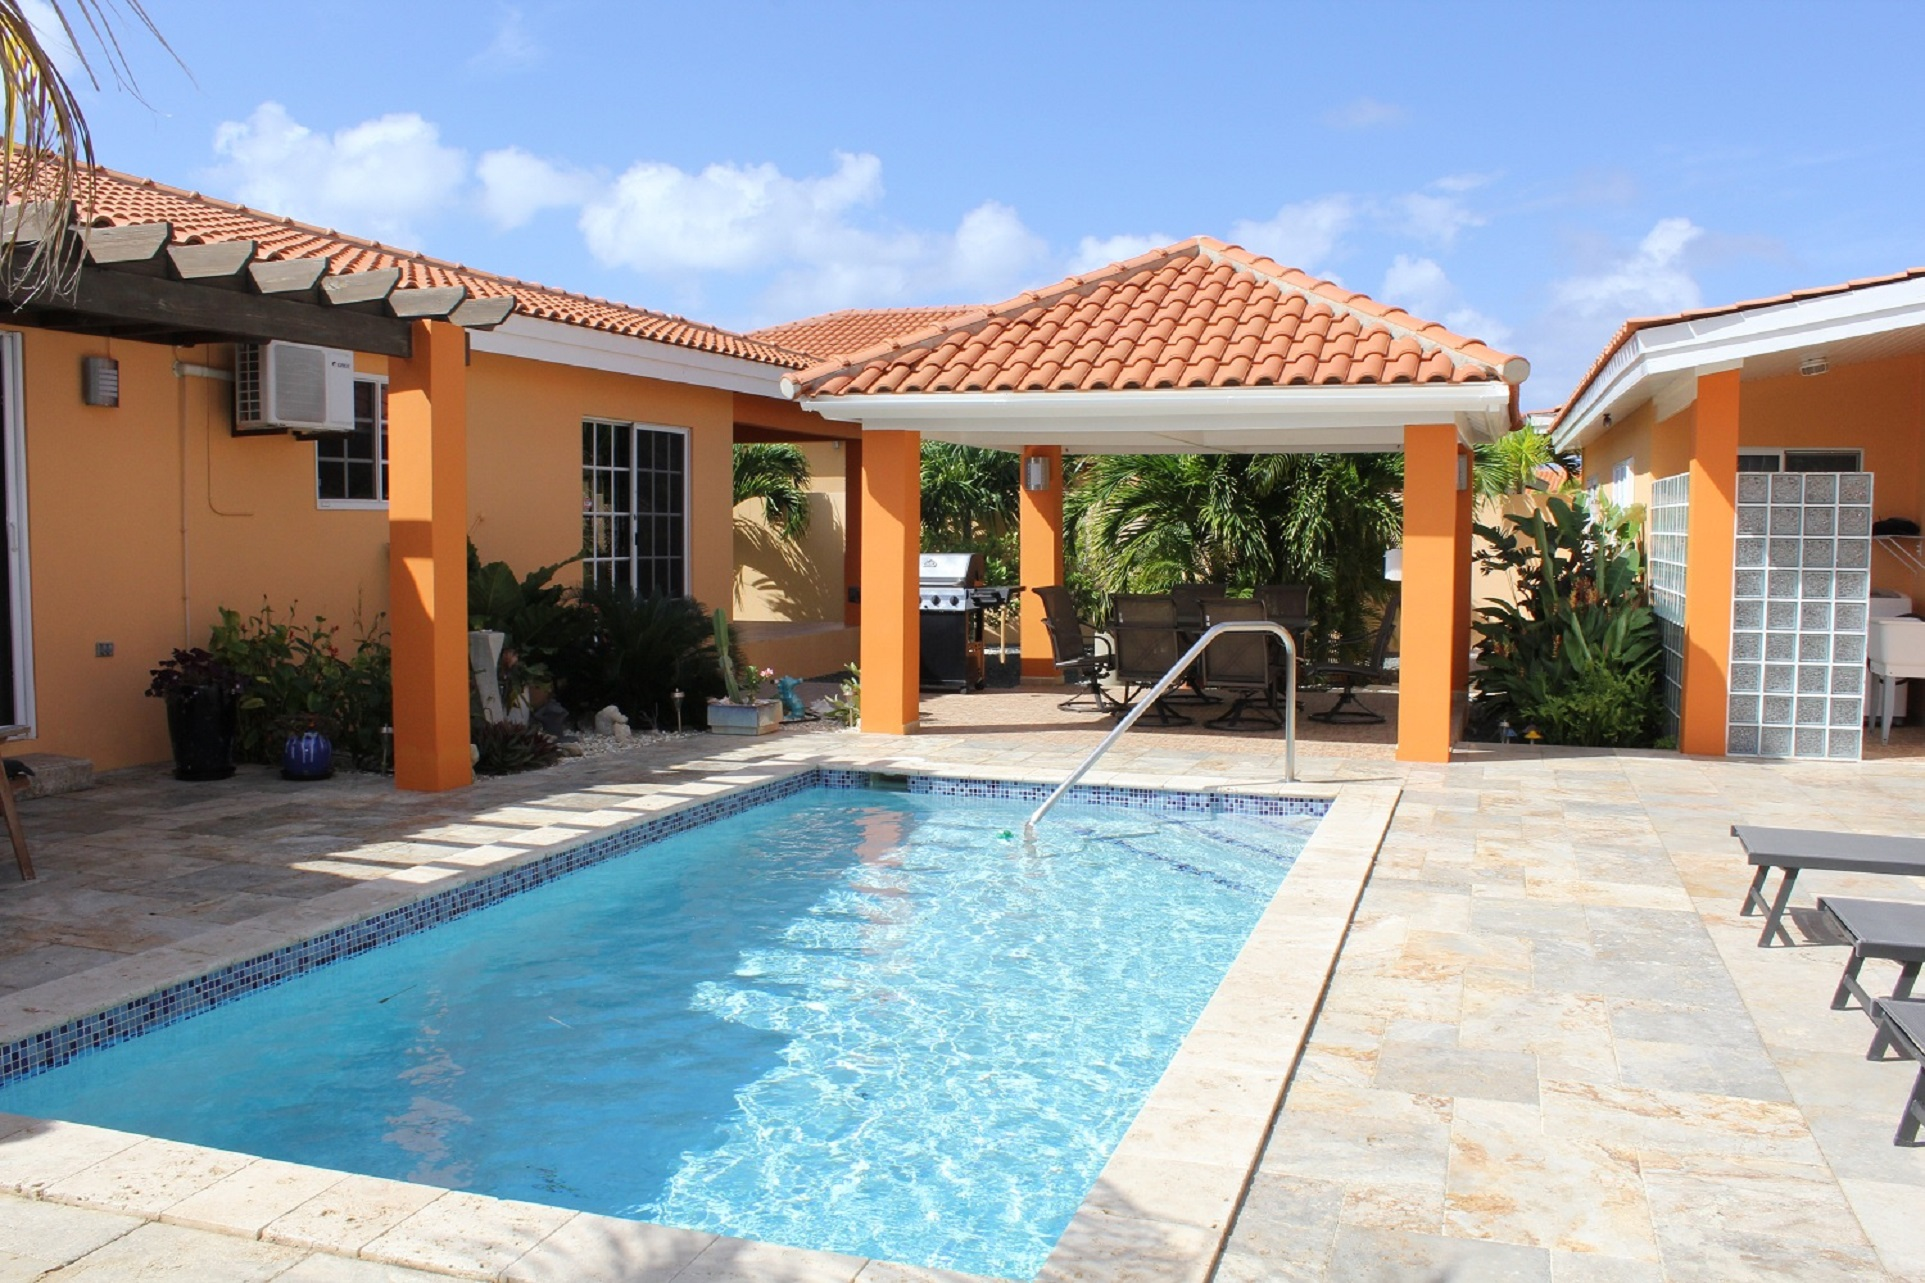 Aruba Day Dreams, only minutes drive away from the best beaches photo 23183104